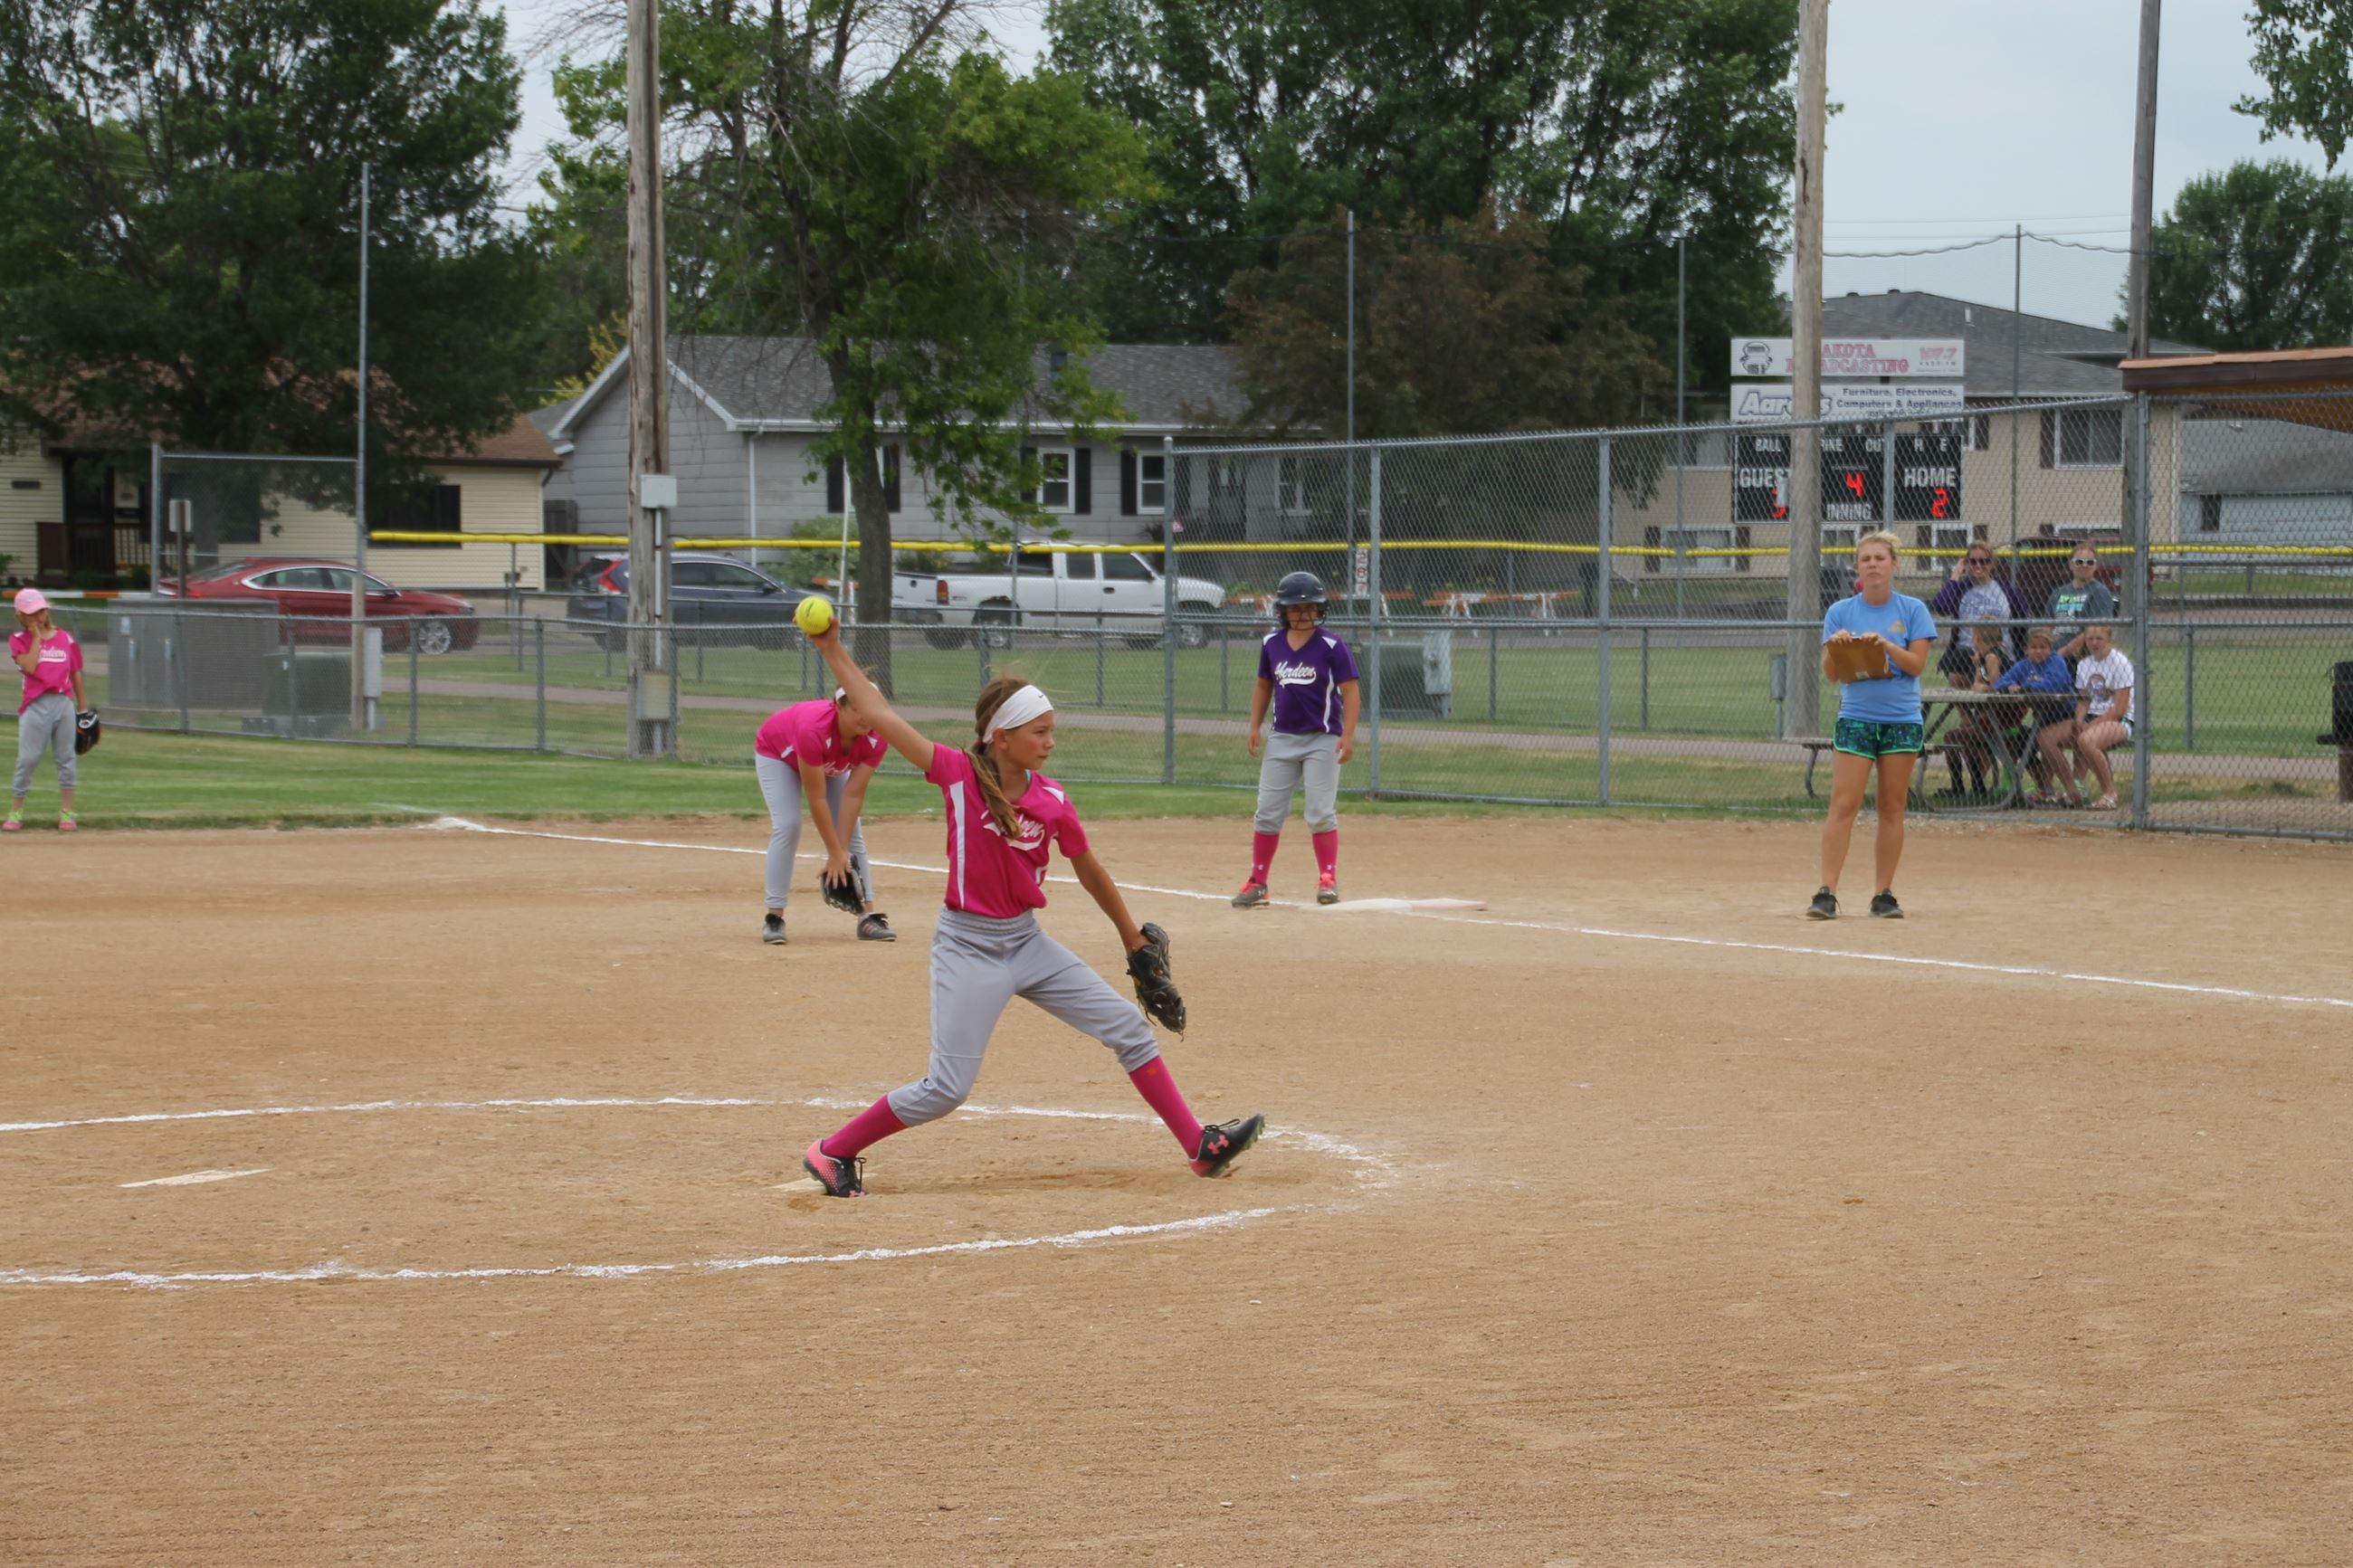 Girl pitching the ball for youth softball